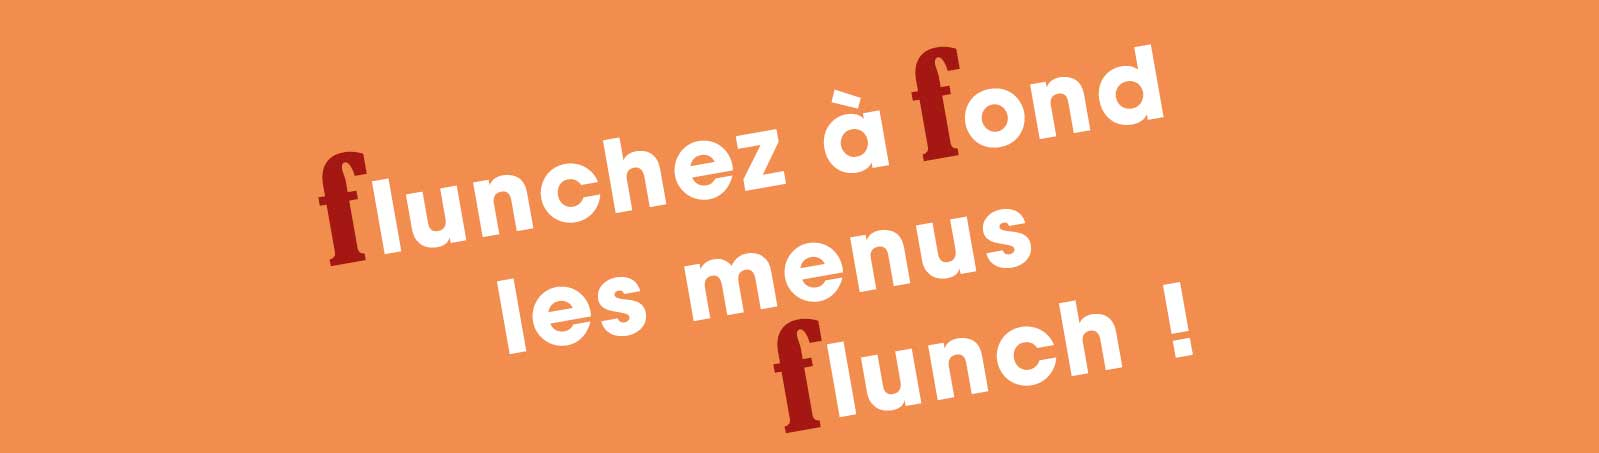 menu flunch